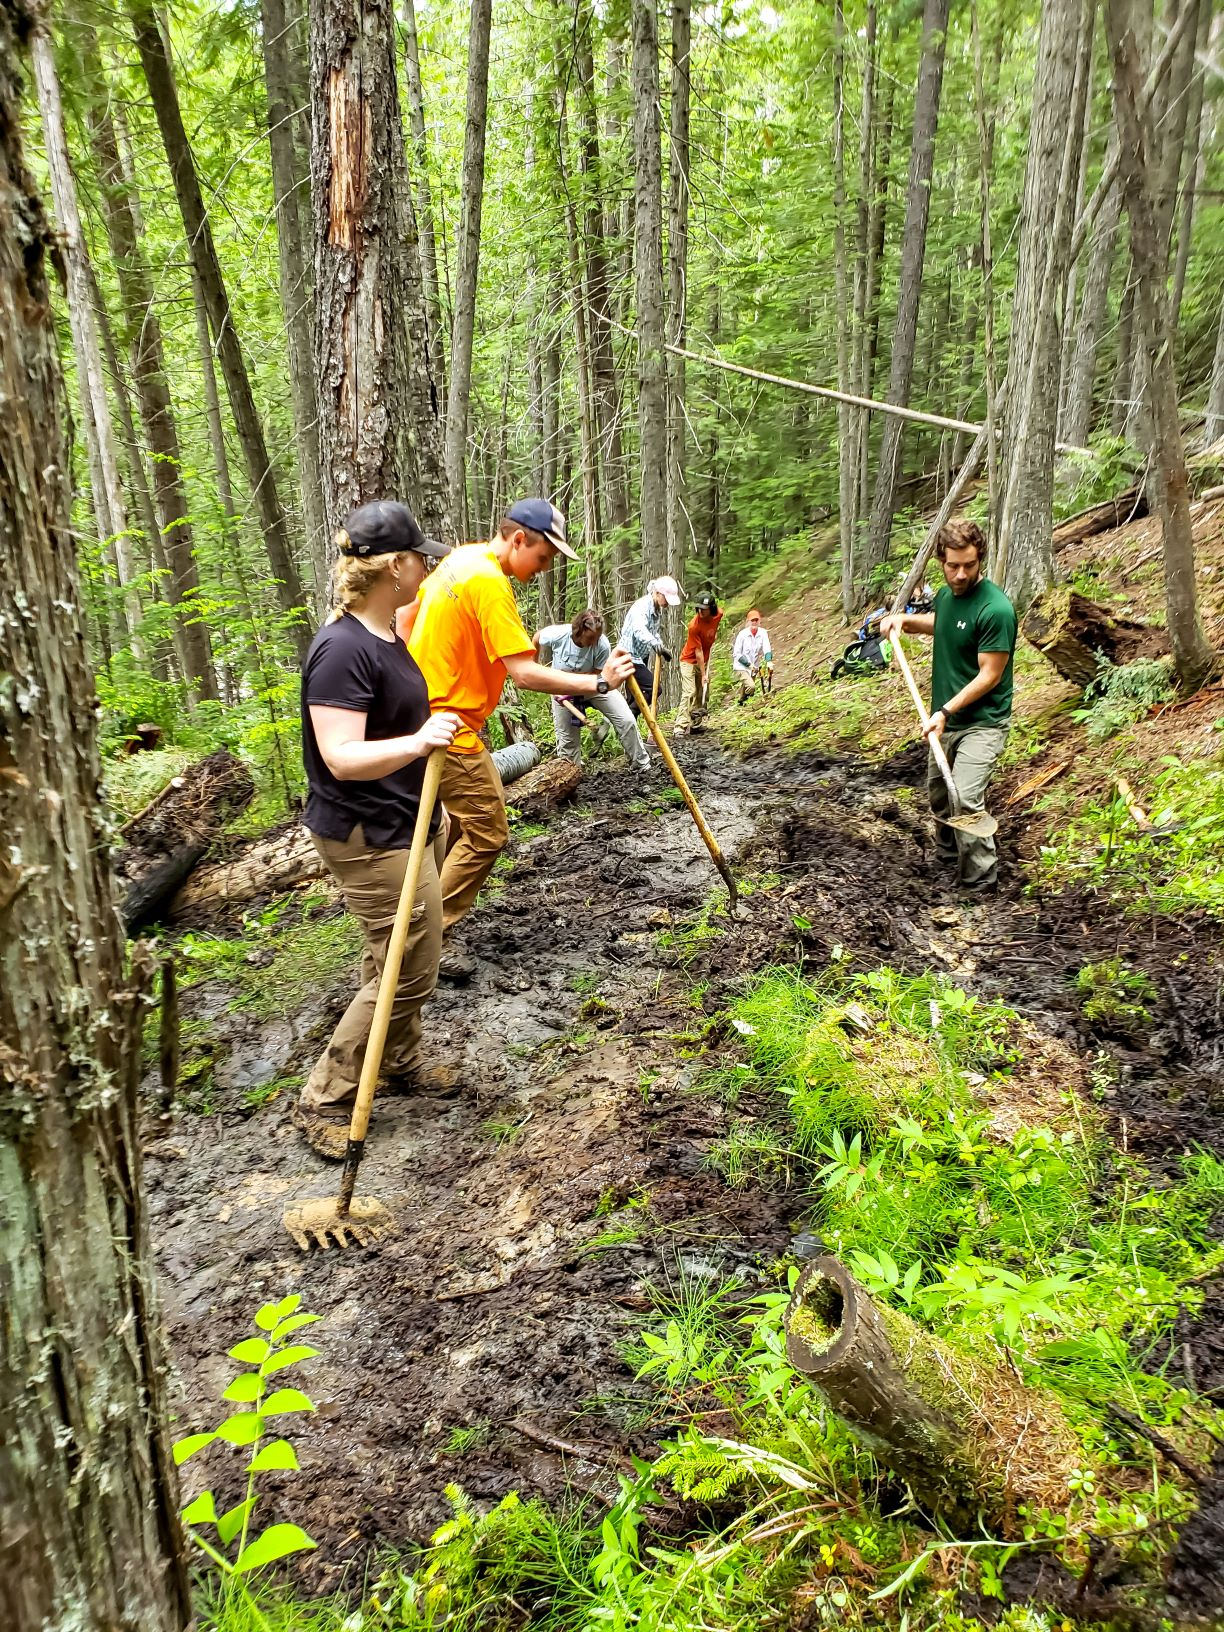 Volunteers, wearing jeans, t-shirts, ball caps, and work gloves, use pulaskis to work on creating hiking trails.